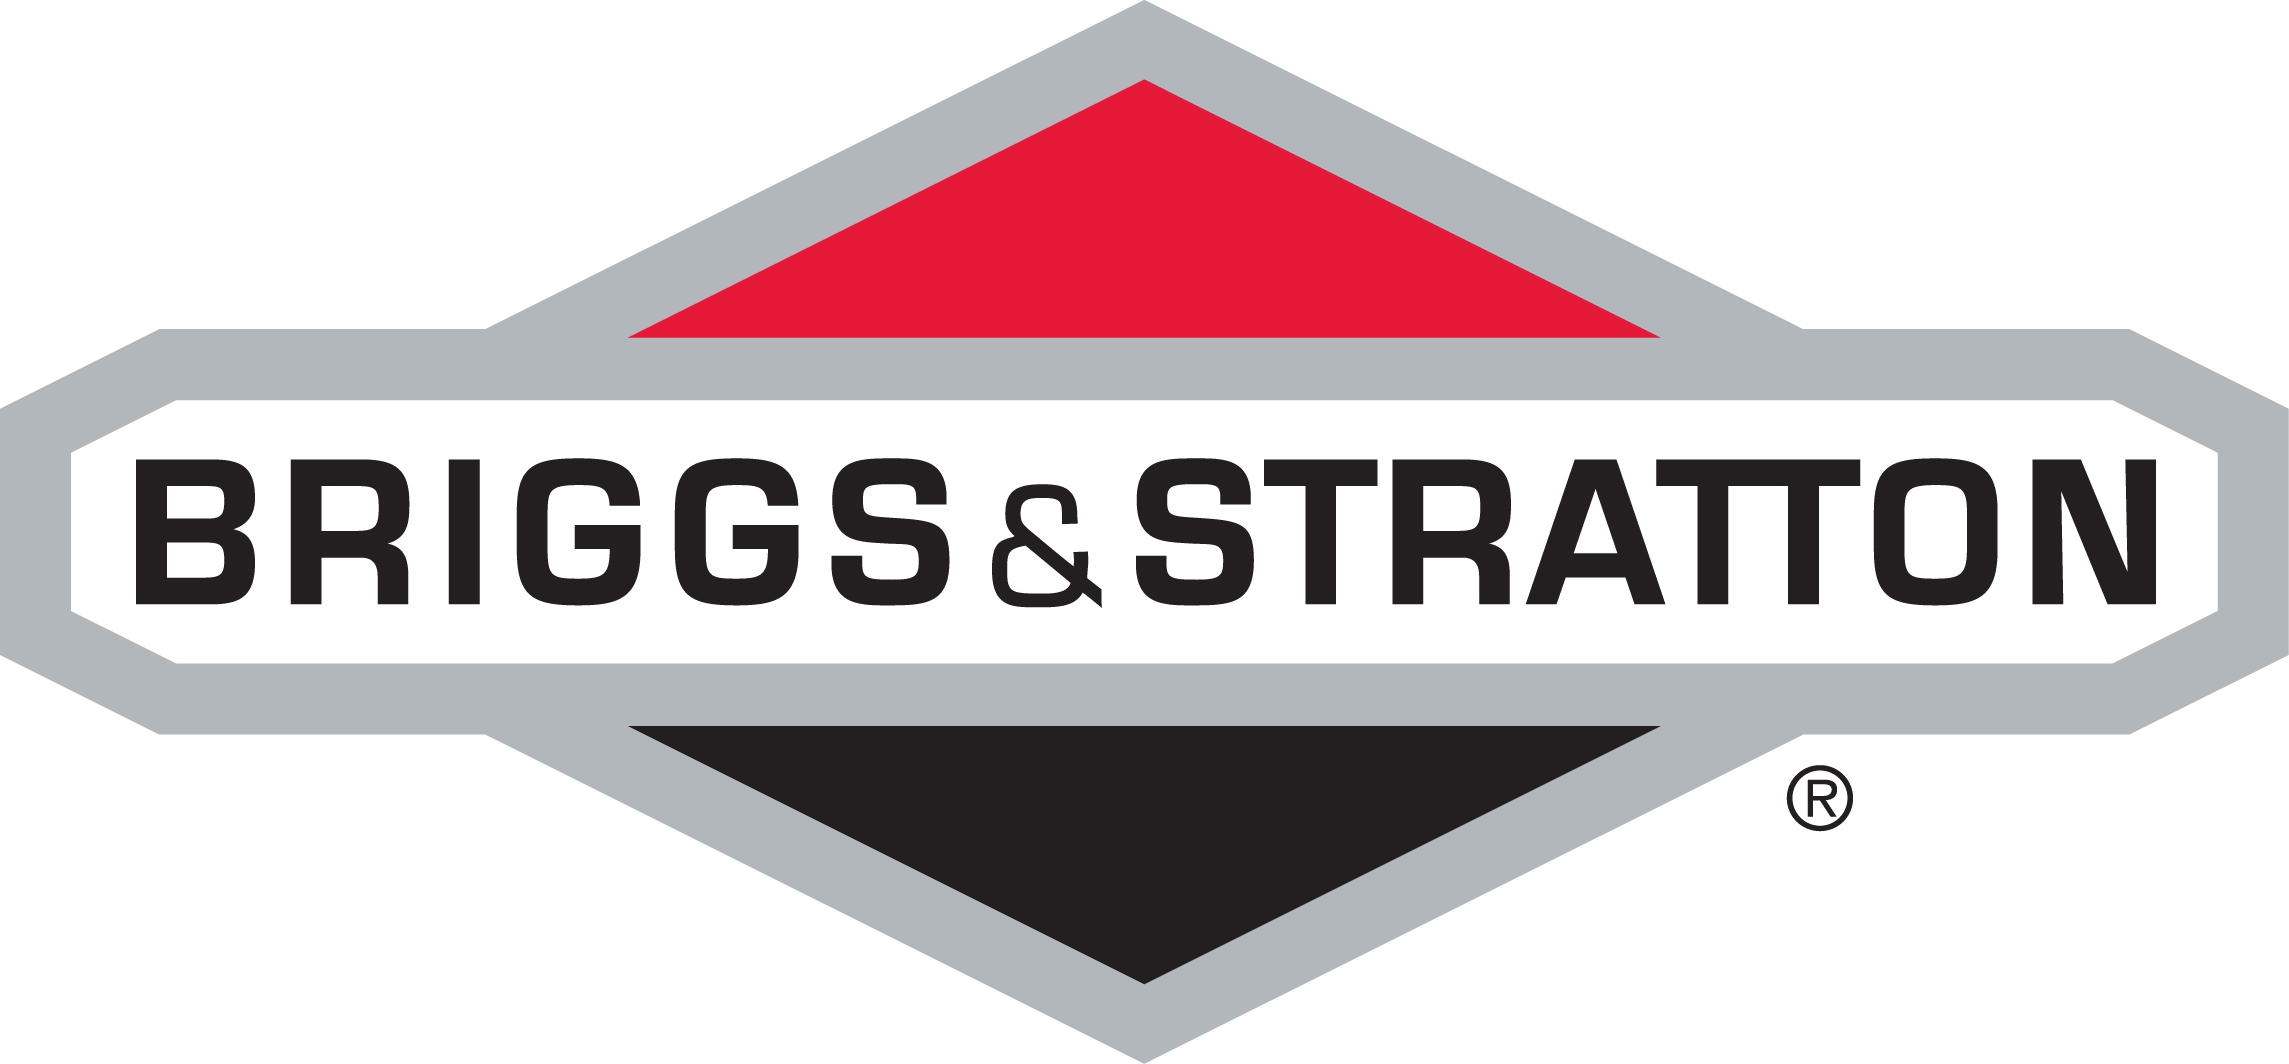 Briggs and stratton Logos